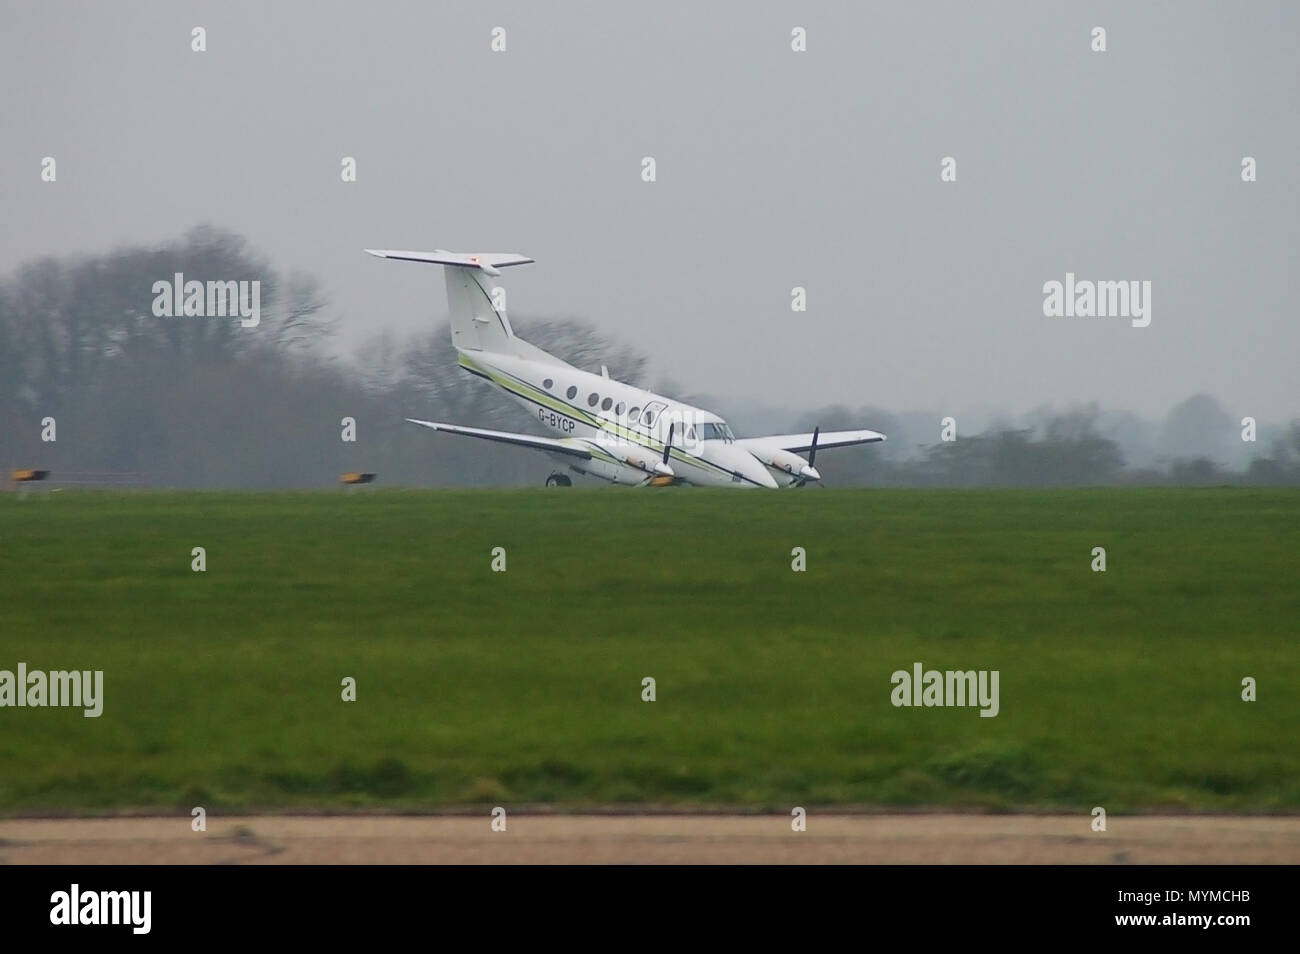 Beech B200 Super Kingair G-BYCP suffered a nose gear undercarriage collapse on landing at London Southend Airport. Emergency landing - Stock Image